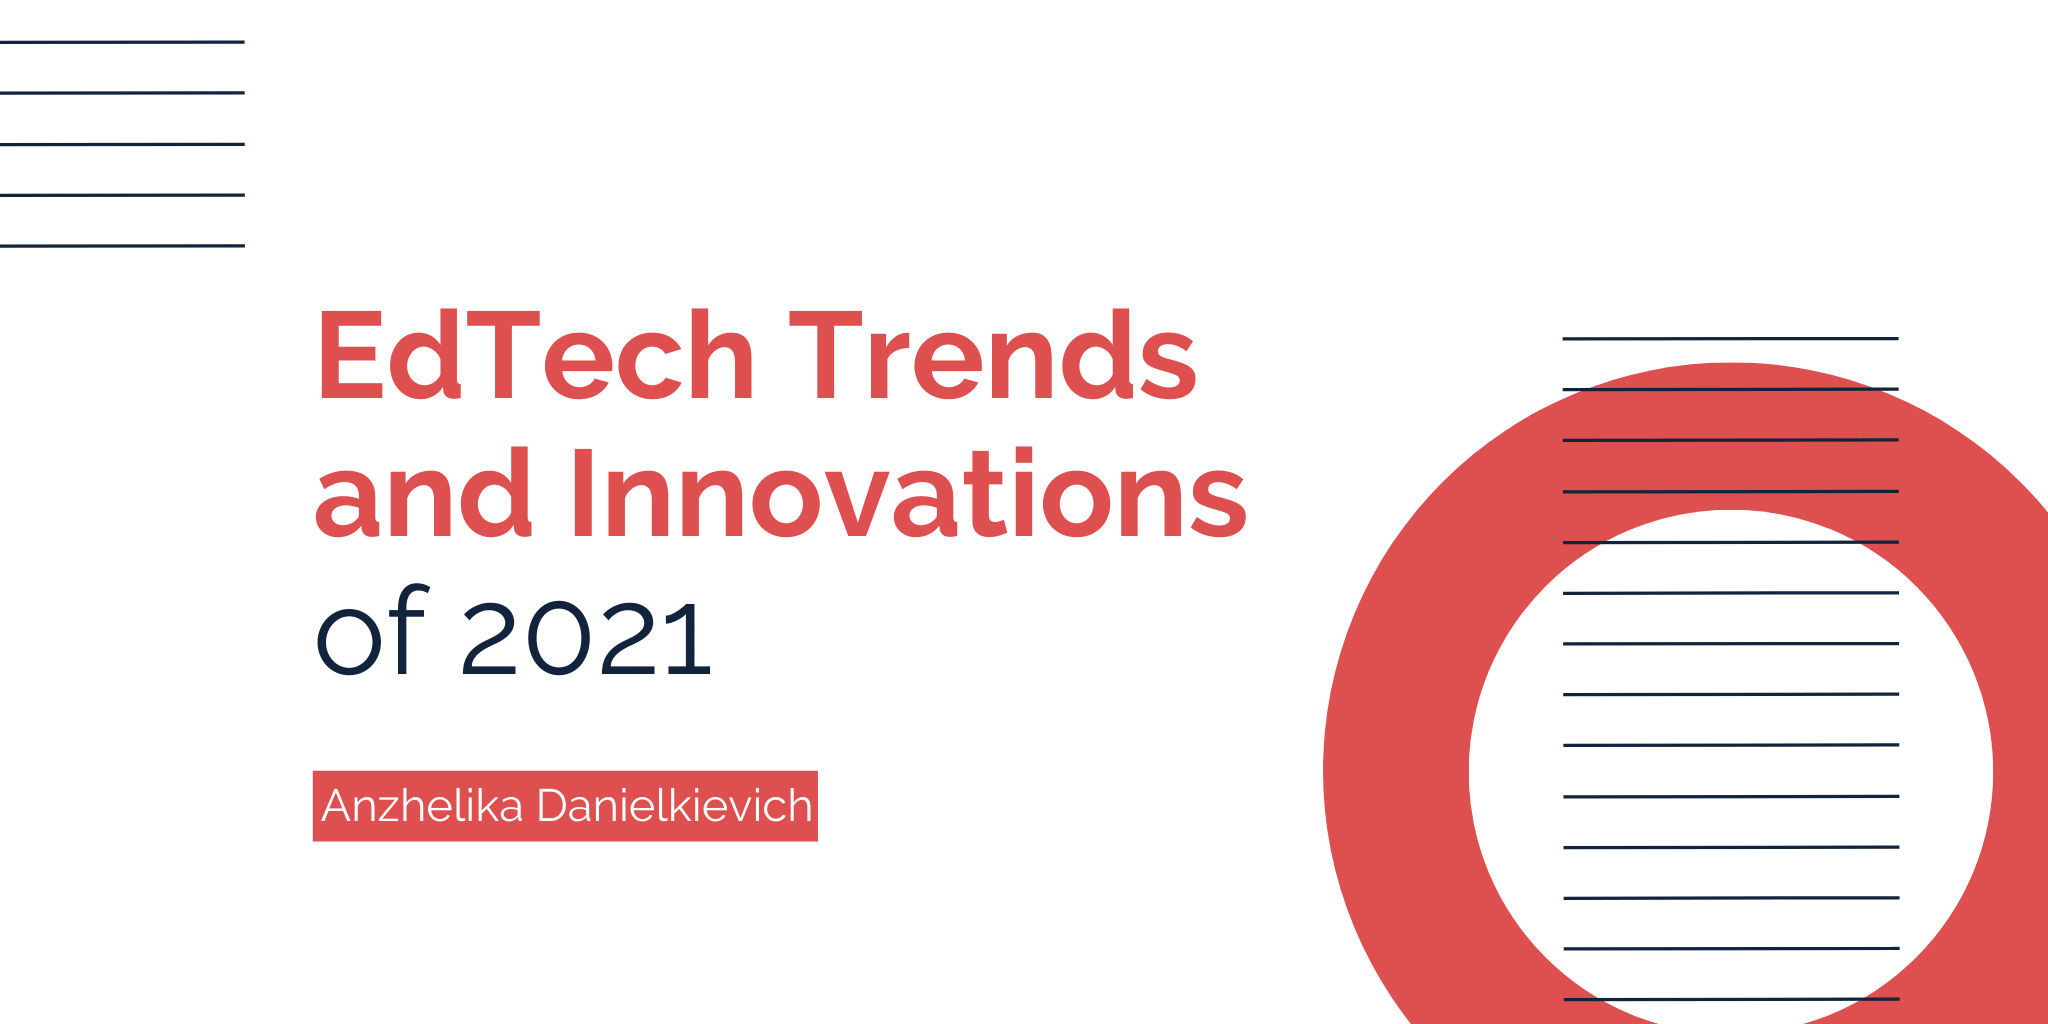 5 Major Technology Trends in Education in 2021